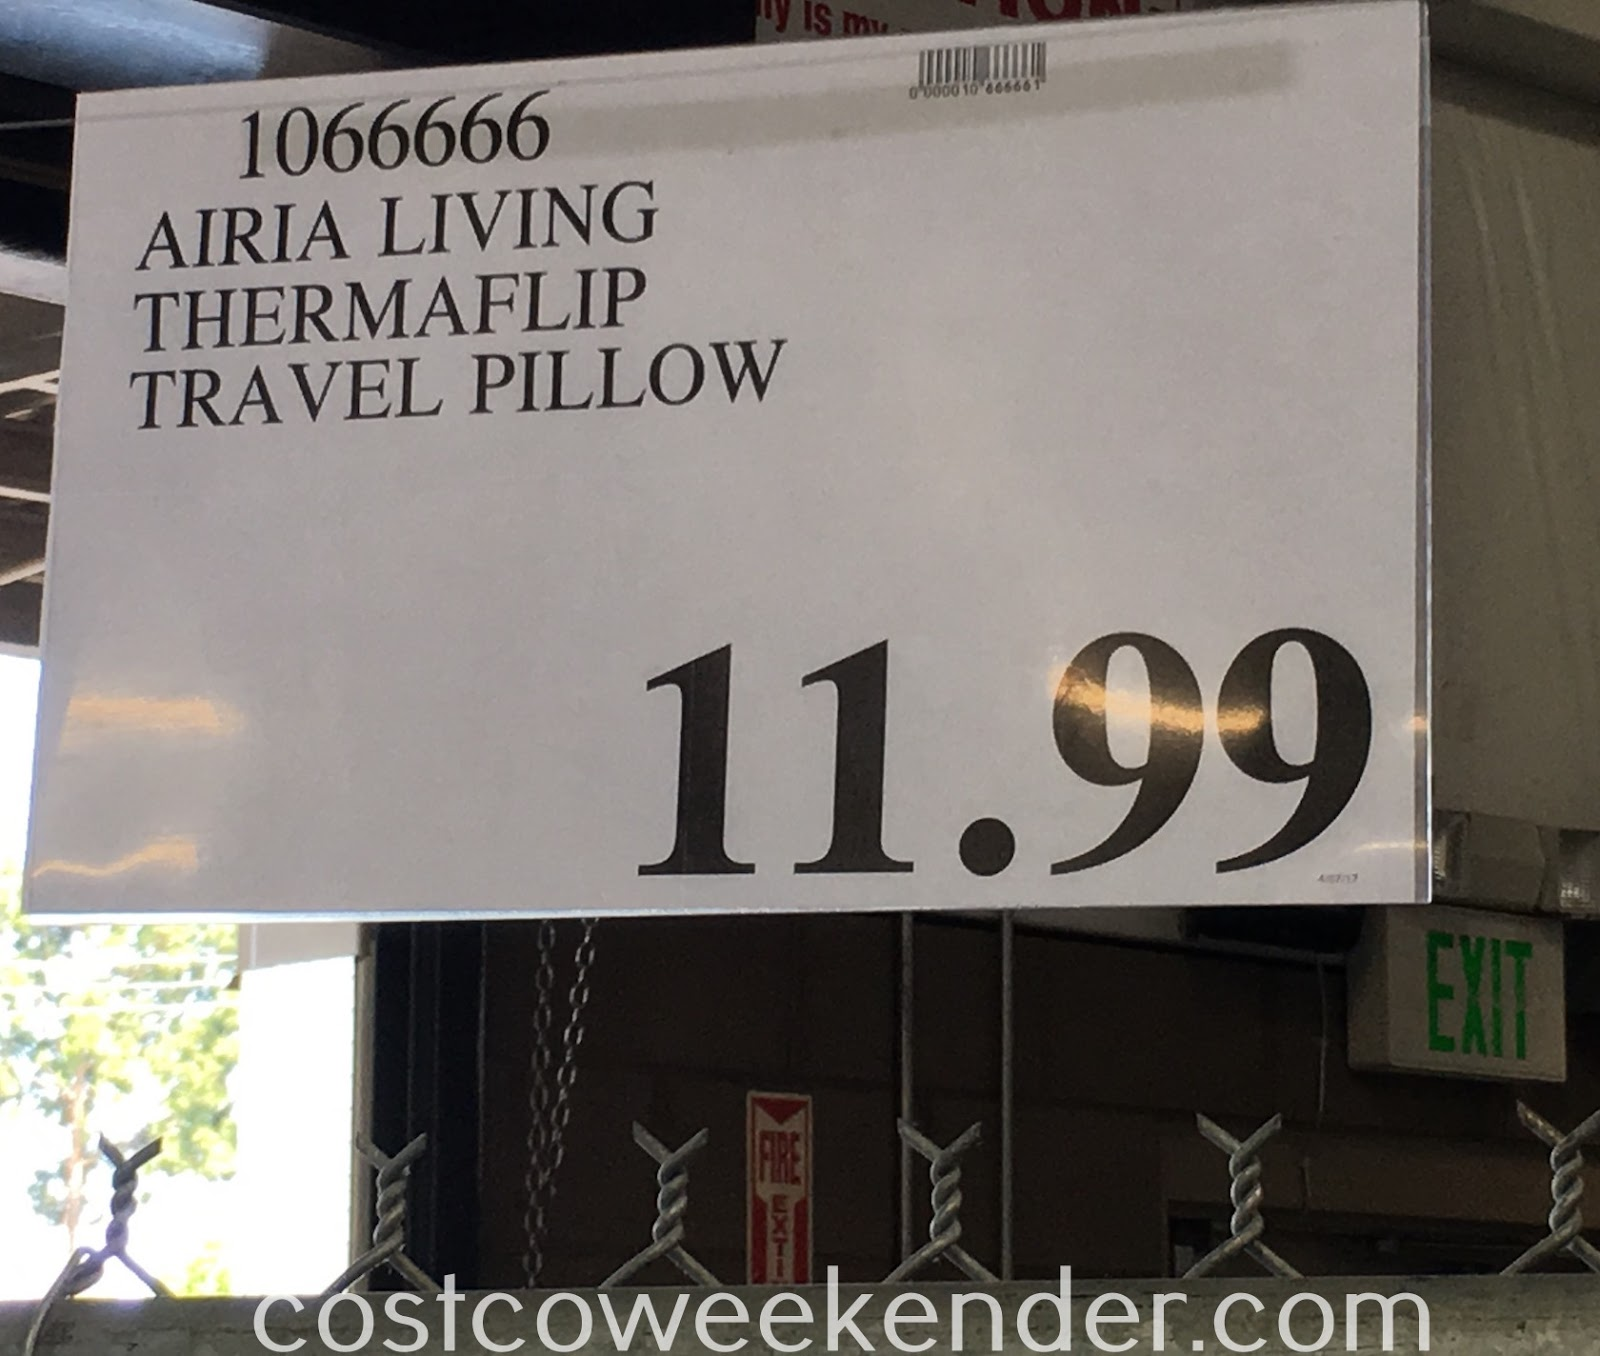 Deal for the Aria Living ThermaFlip Travel Pillow at Costco